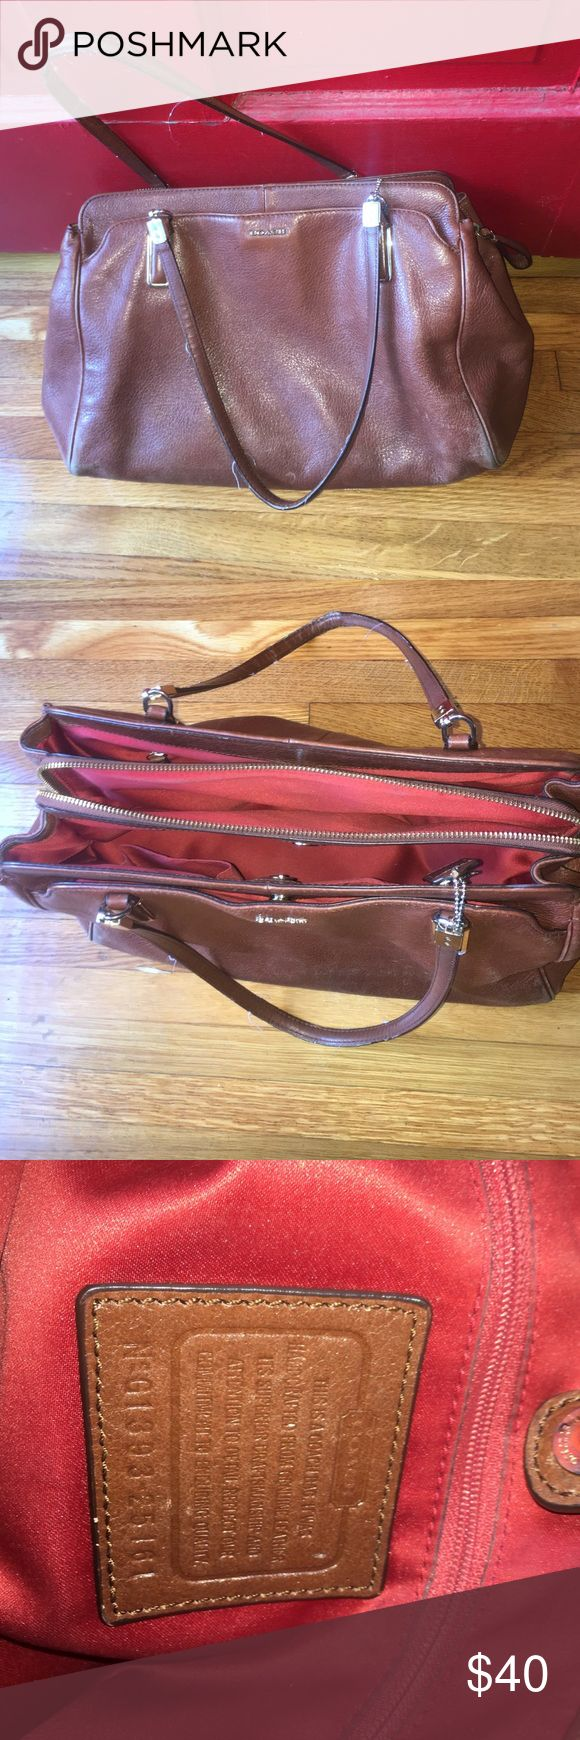 "Coach Briefcase Bag This dark brown & red lined leather Coach bag holds EVERYTHING--even a small laptop if needed. I used this for work conferences. Used but in good condition. STRAP DROP: 10"" ACROSS: 12"" DEPTH: 9"" to inner snap / 10.5"" to top of bag Coach Bags Shoulder Bags"